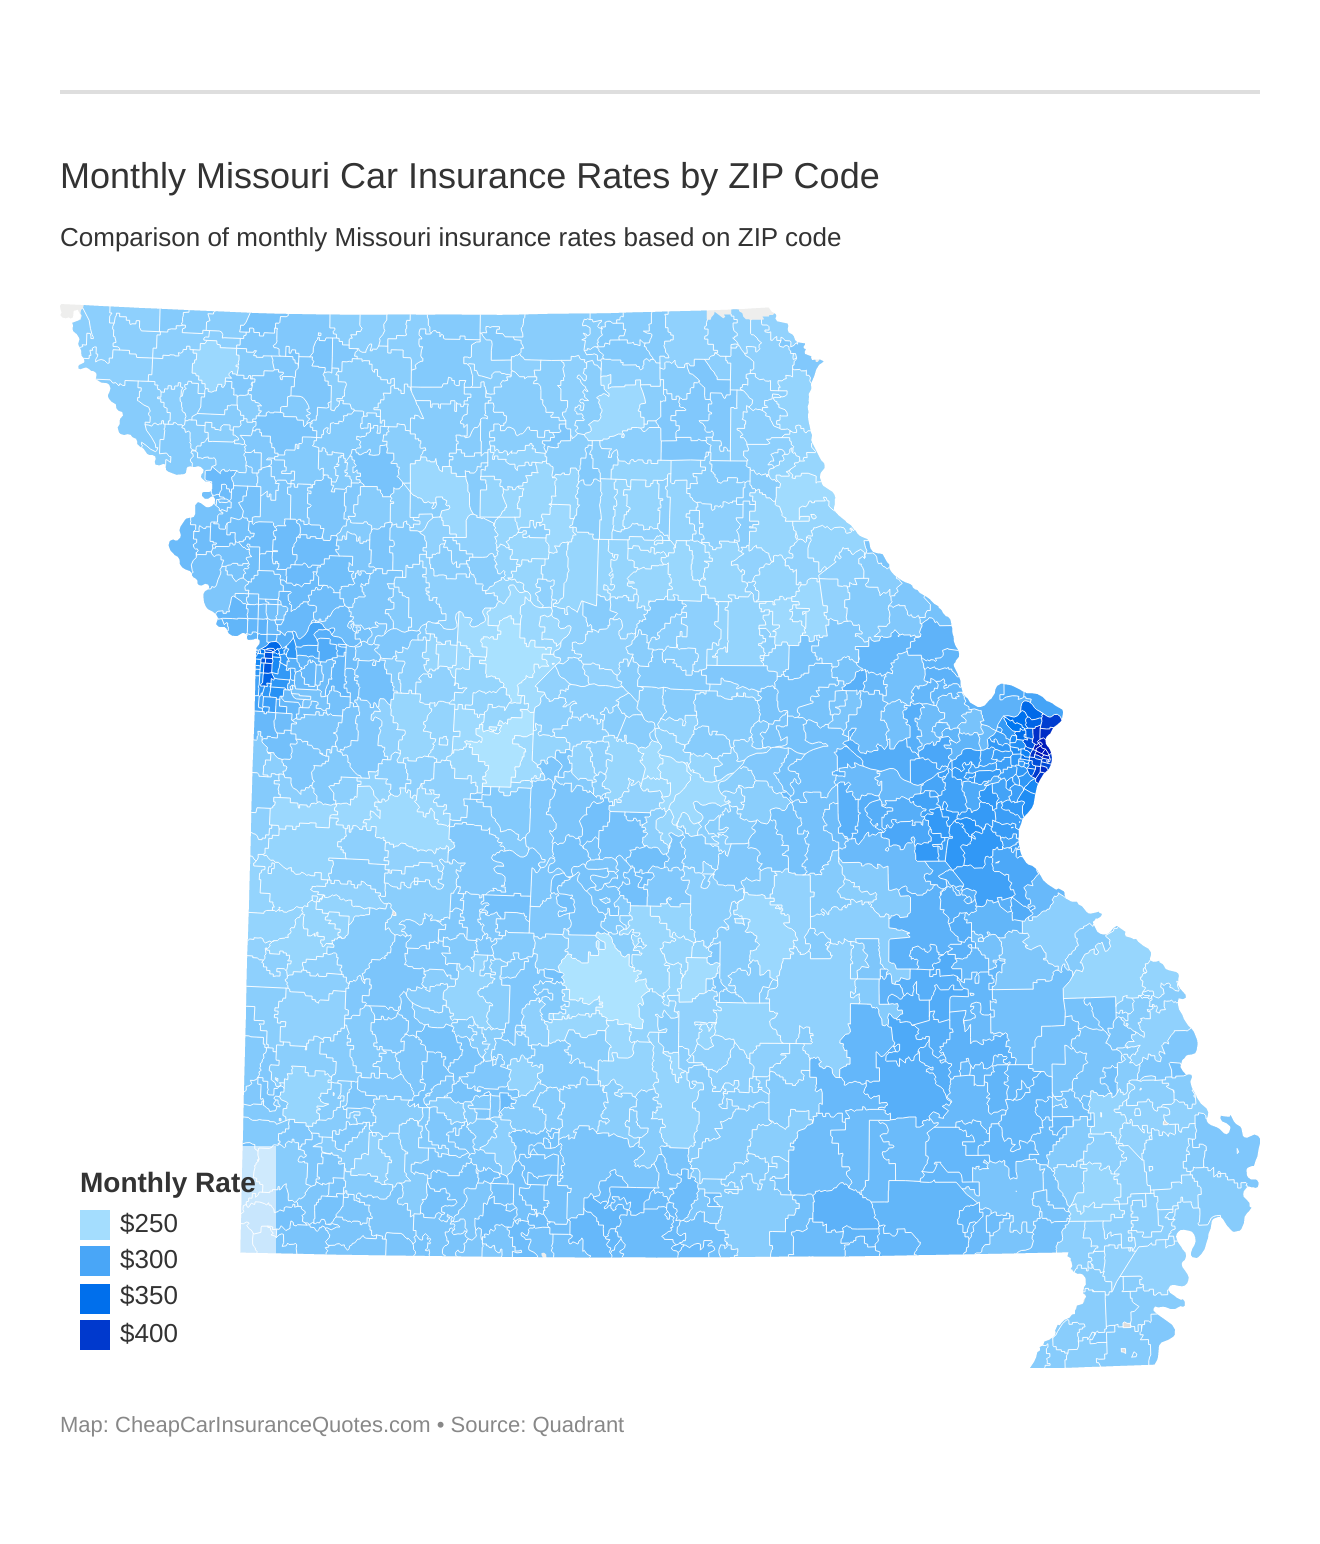 Monthly Missouri Car Insurance Rates by ZIP Code